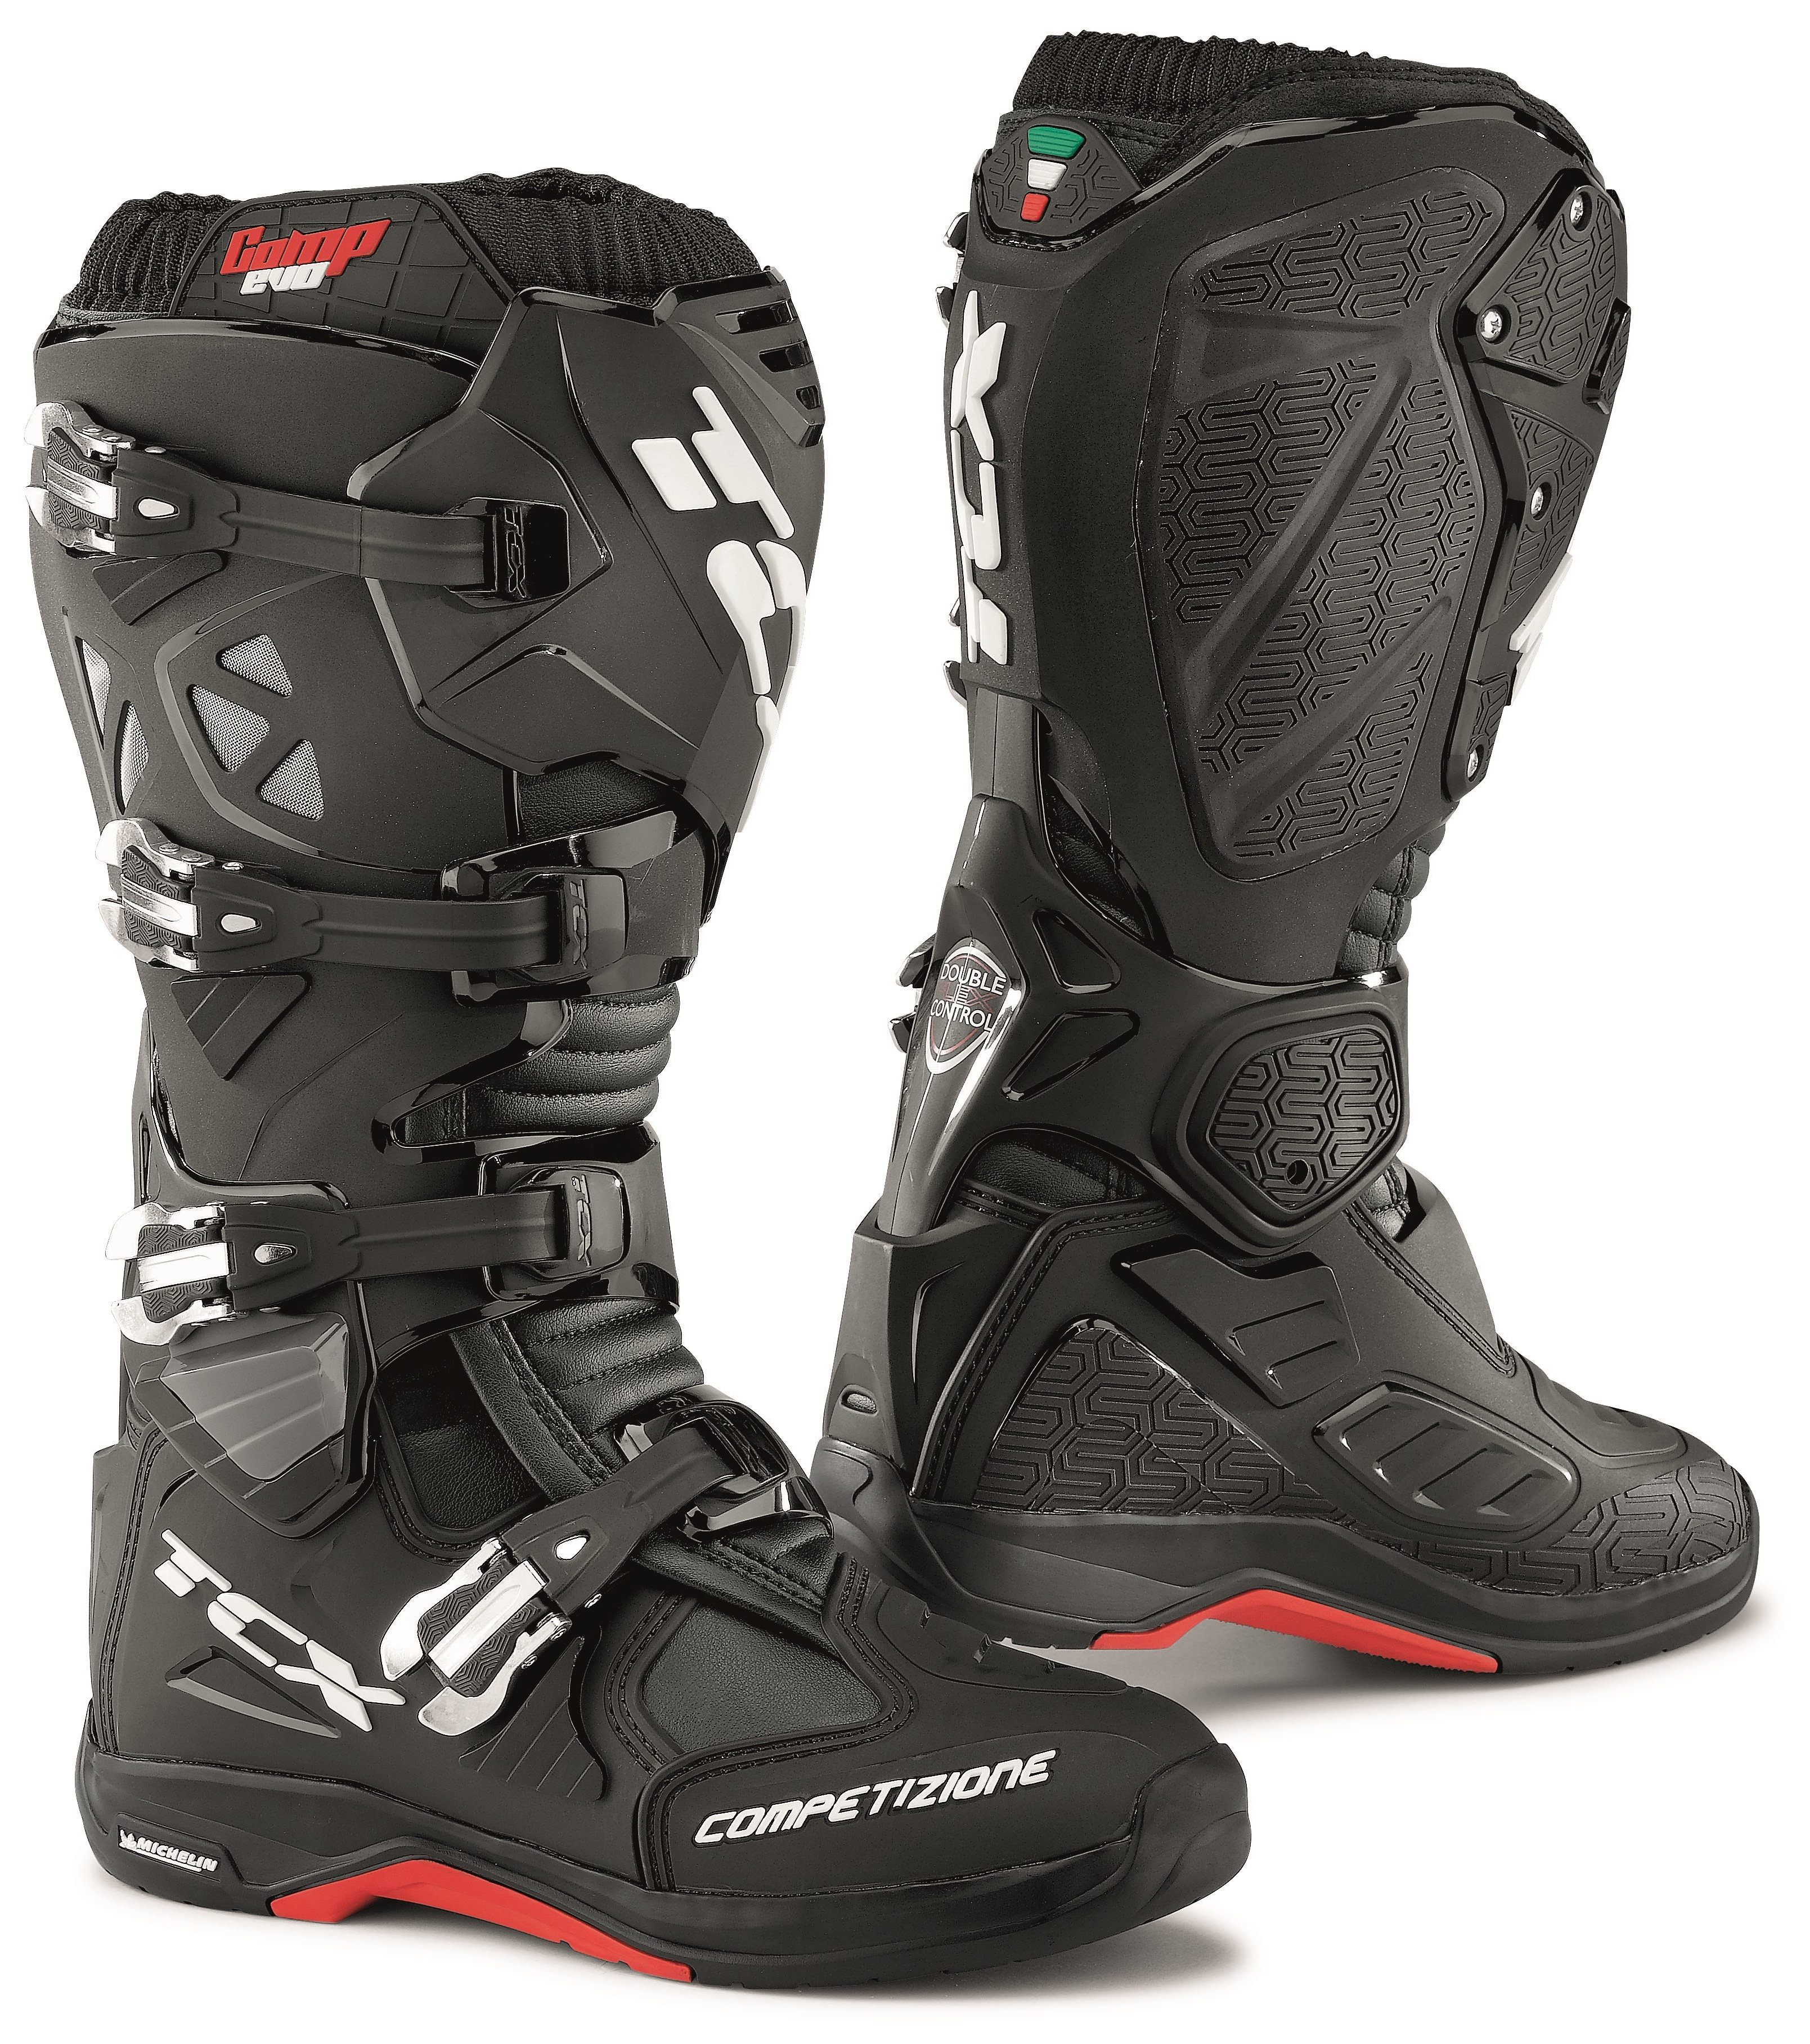 199a4056c10d2 TCX Comp EVO 2 Michelin Boots - Cycle Gear